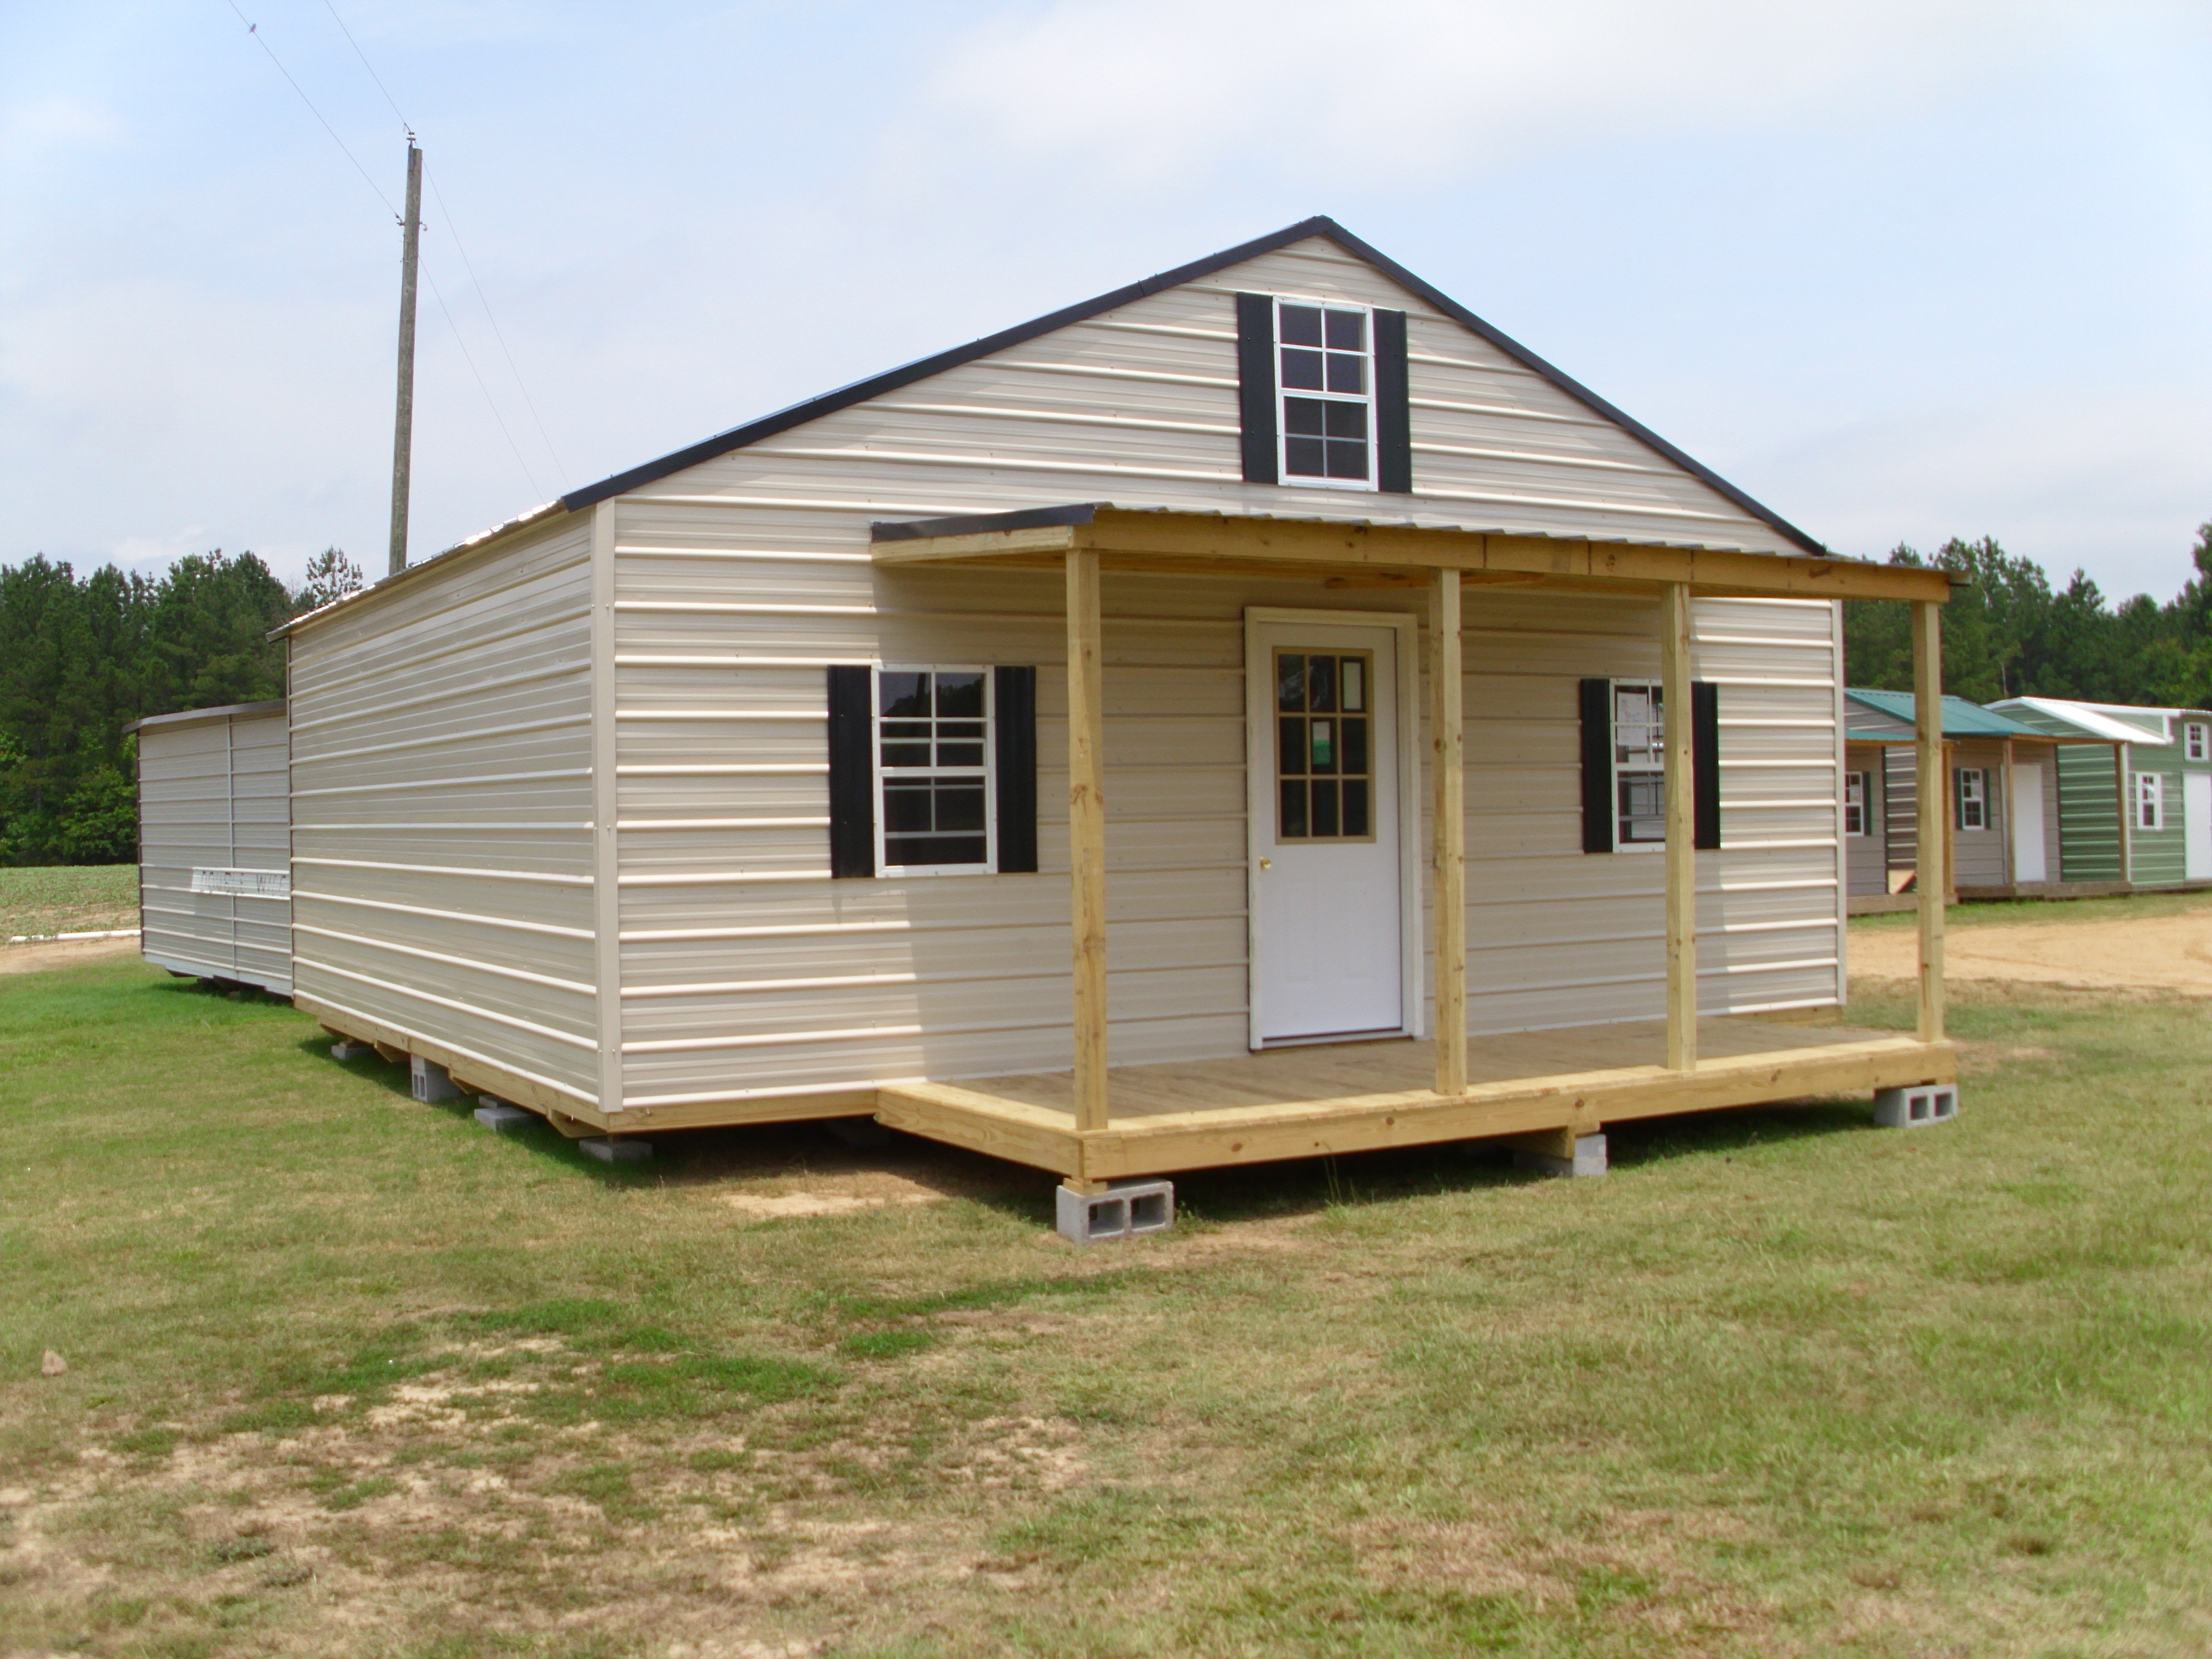 Storage sheds with loft pictures for Barn storage sheds with loft